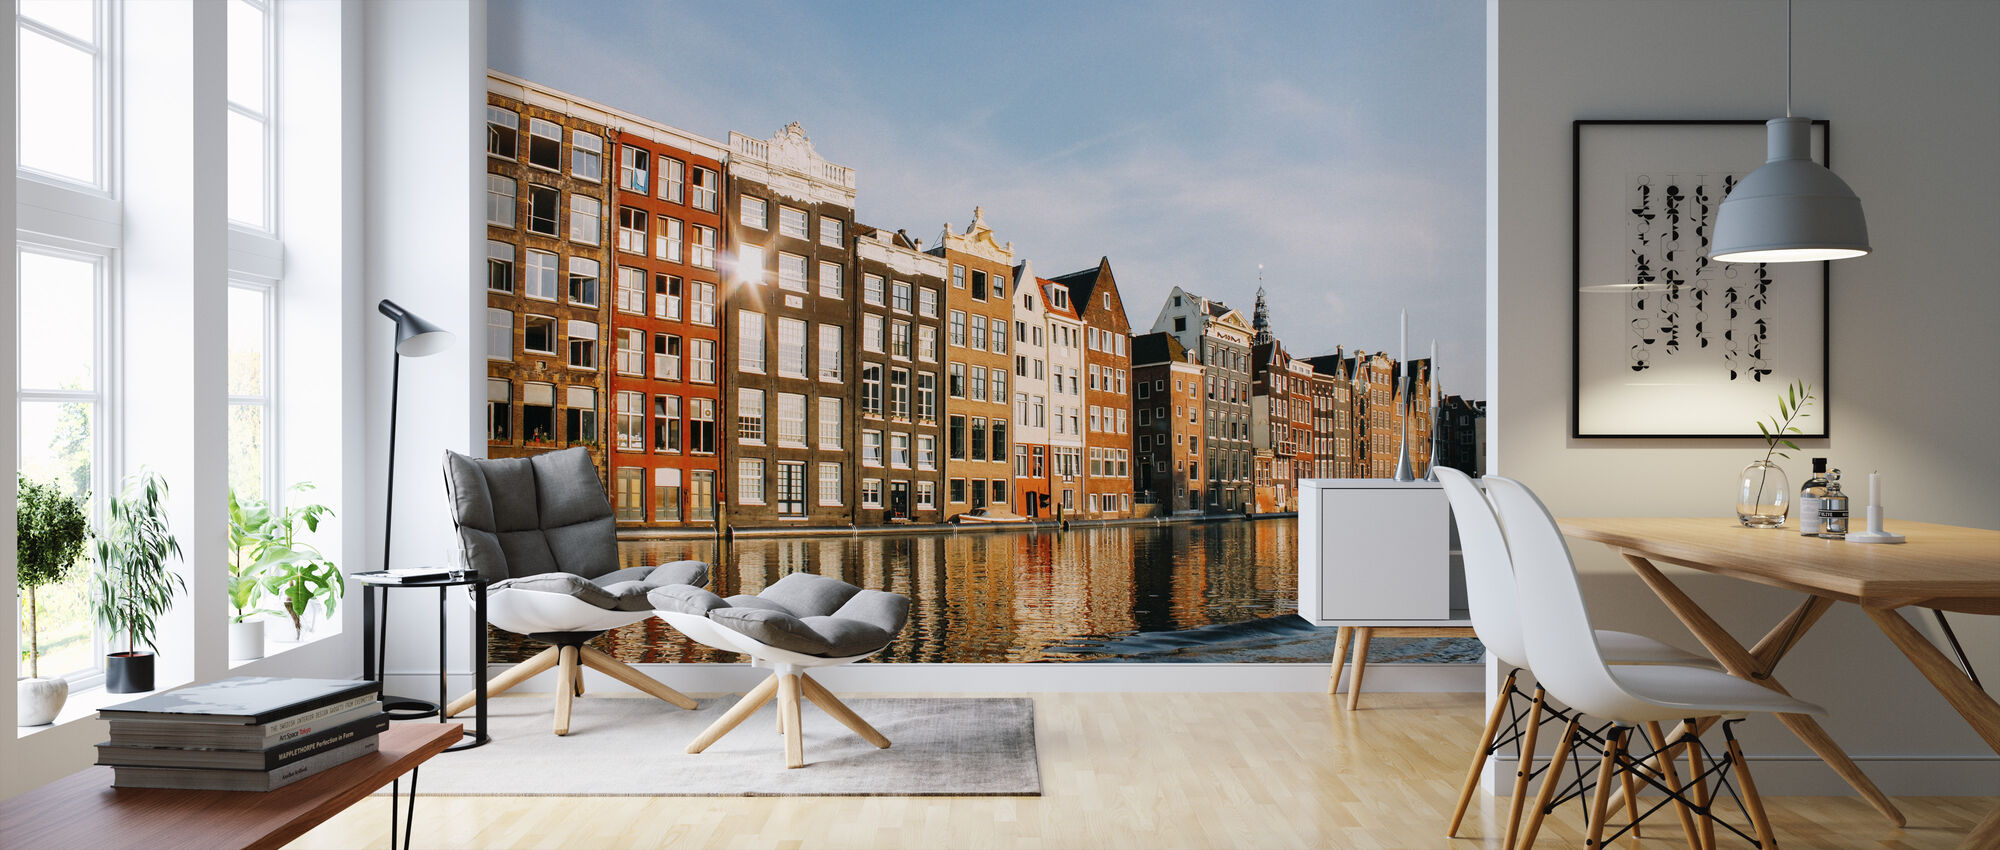 Amsterdam Buildings - Wallpaper - Living Room